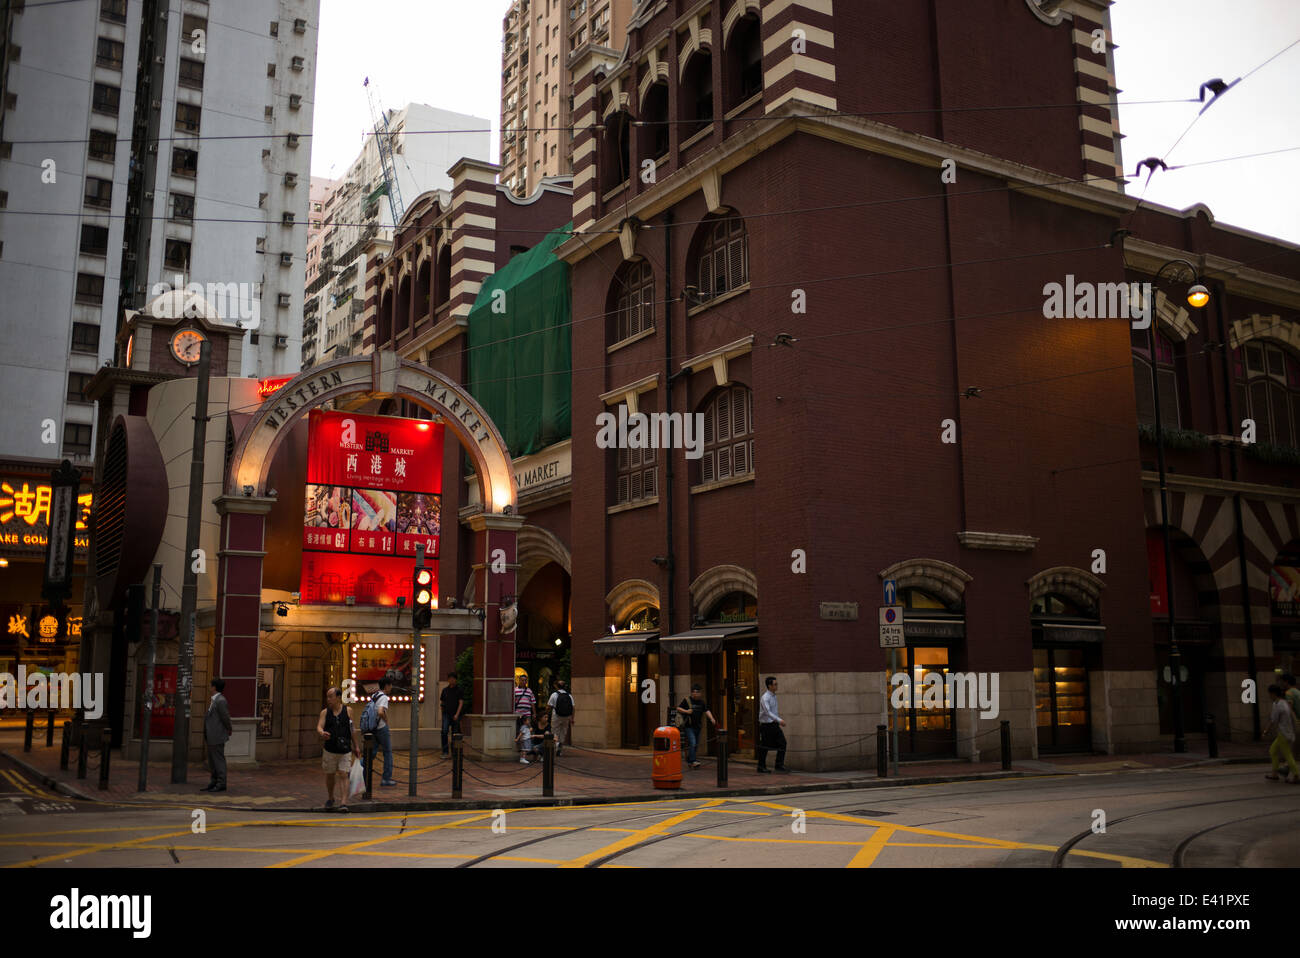 Western arts and crafts - Stock Photo Western Market In Sheung Wan Hong Kong An Old Historic Building Popular With Tourist For Its Arts And Crafts